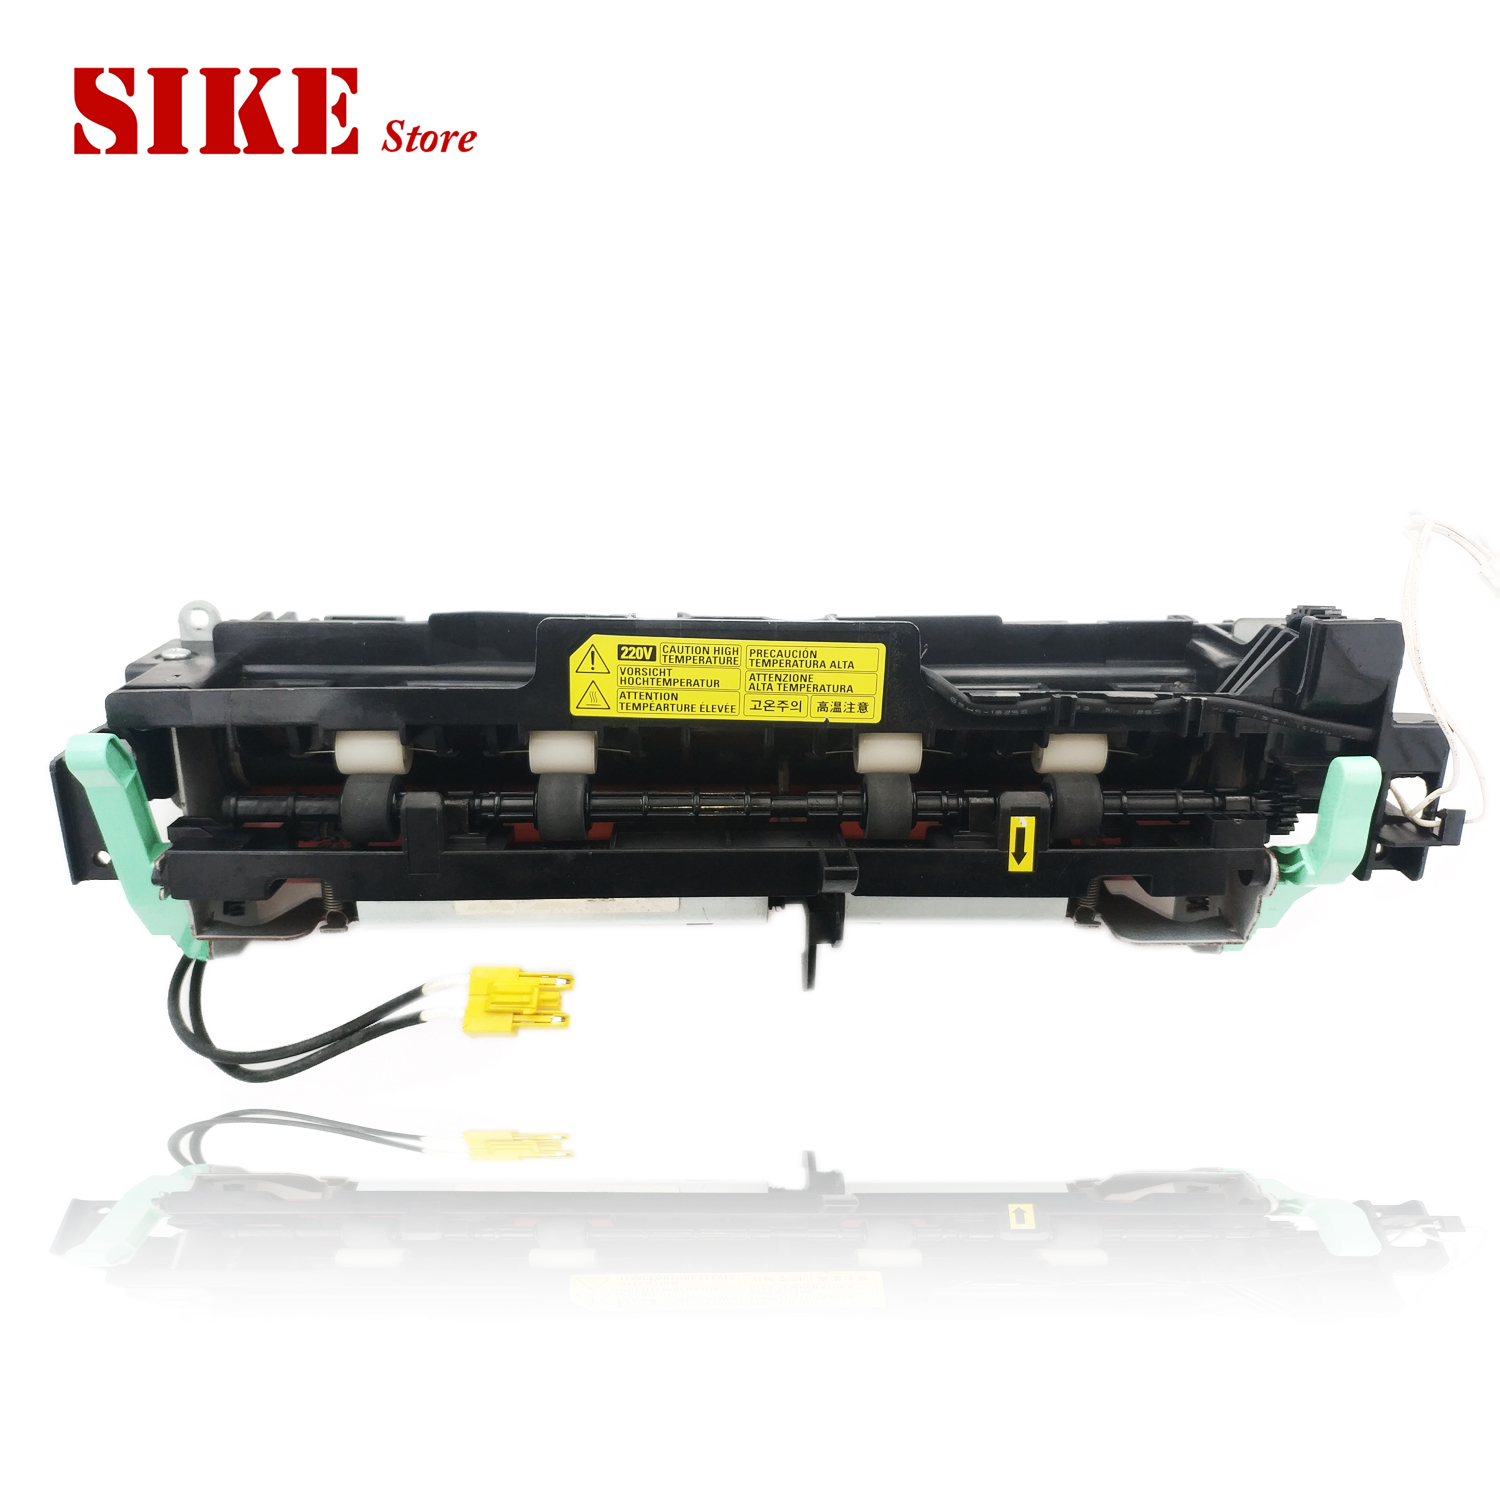 Fuser Unit Assy For Samsung ML-2540 ML-2541 ML-2545 ML-2547 ML 2540 2541 2545 2547 Fuser Assembly  JC91-00946A JC91-00945A